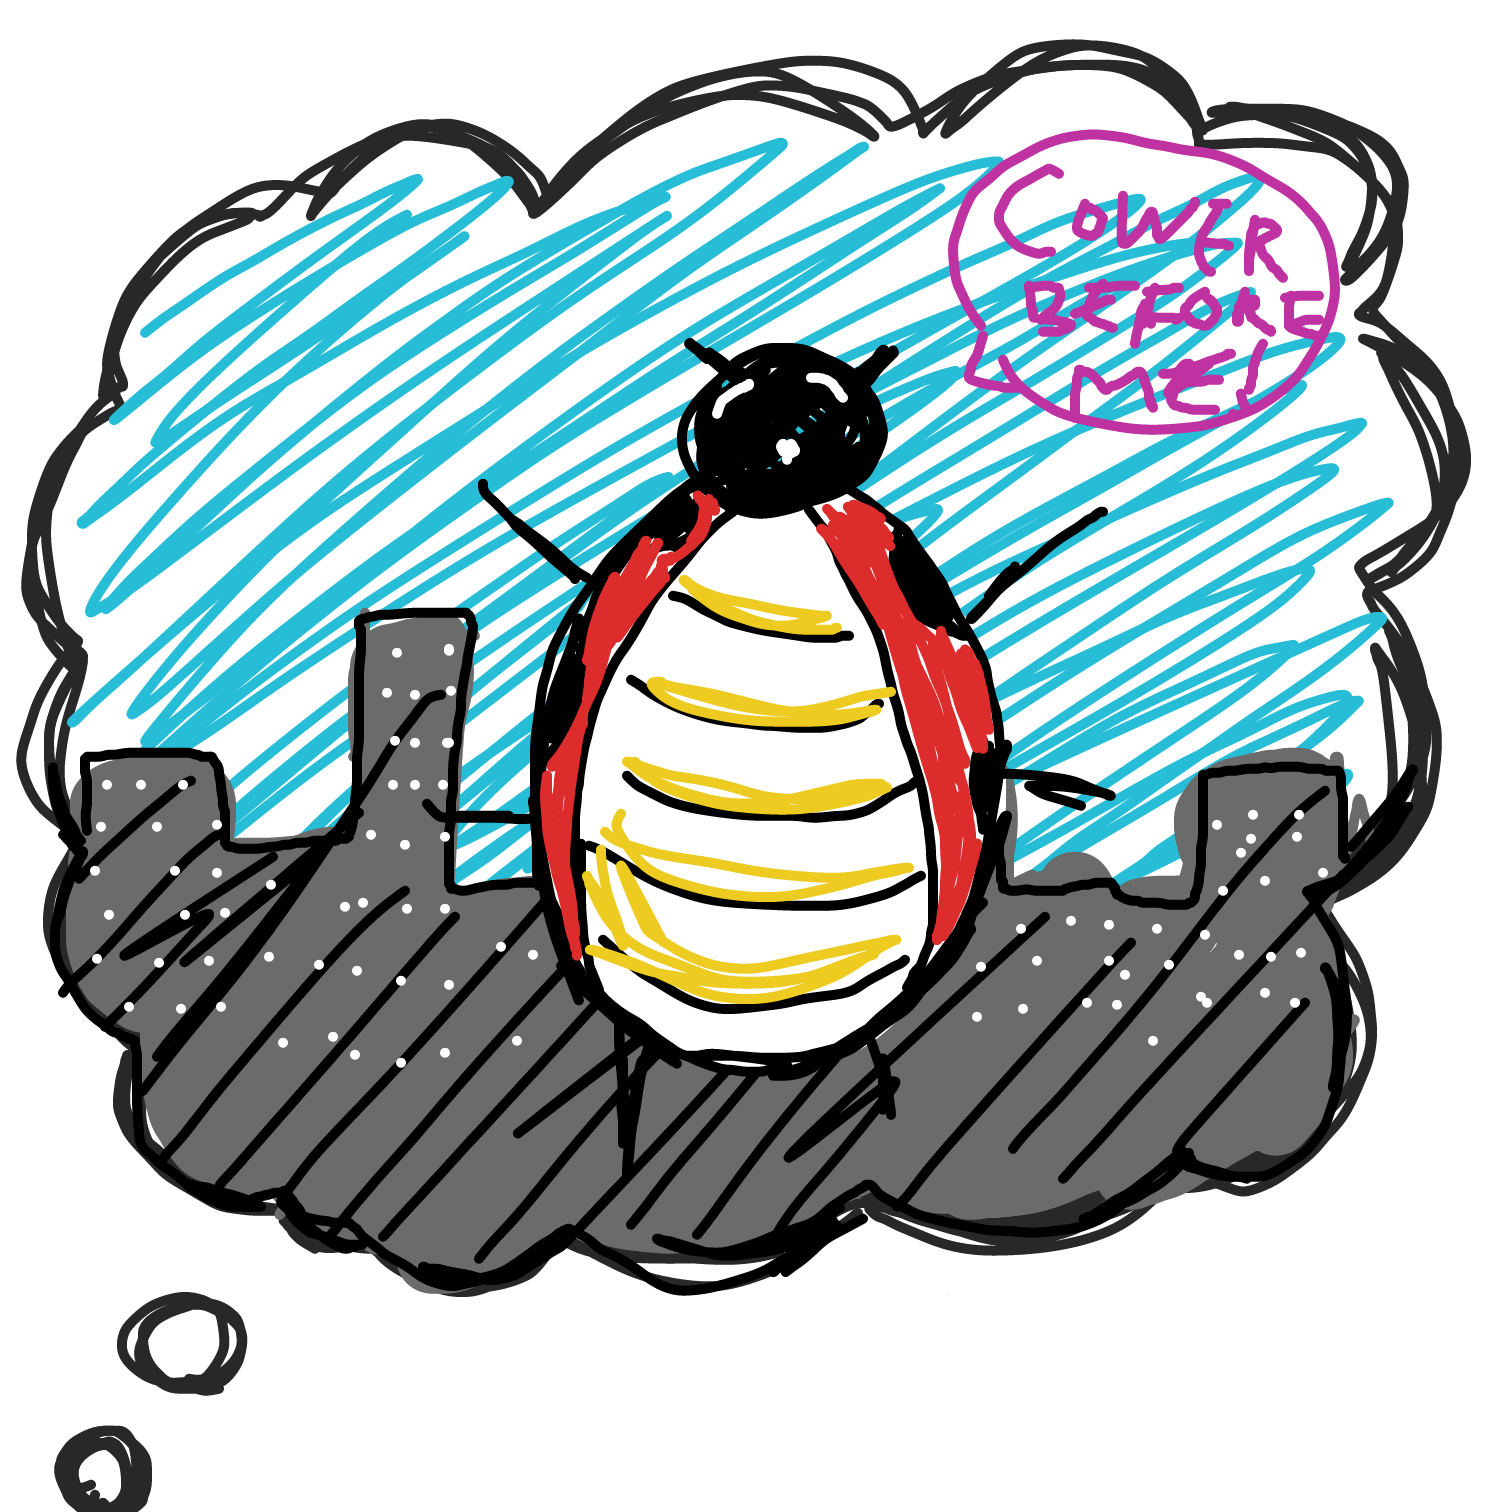 Dreaming Lady Bug - Online Drawing Game Comic Strip Panel by SamSix